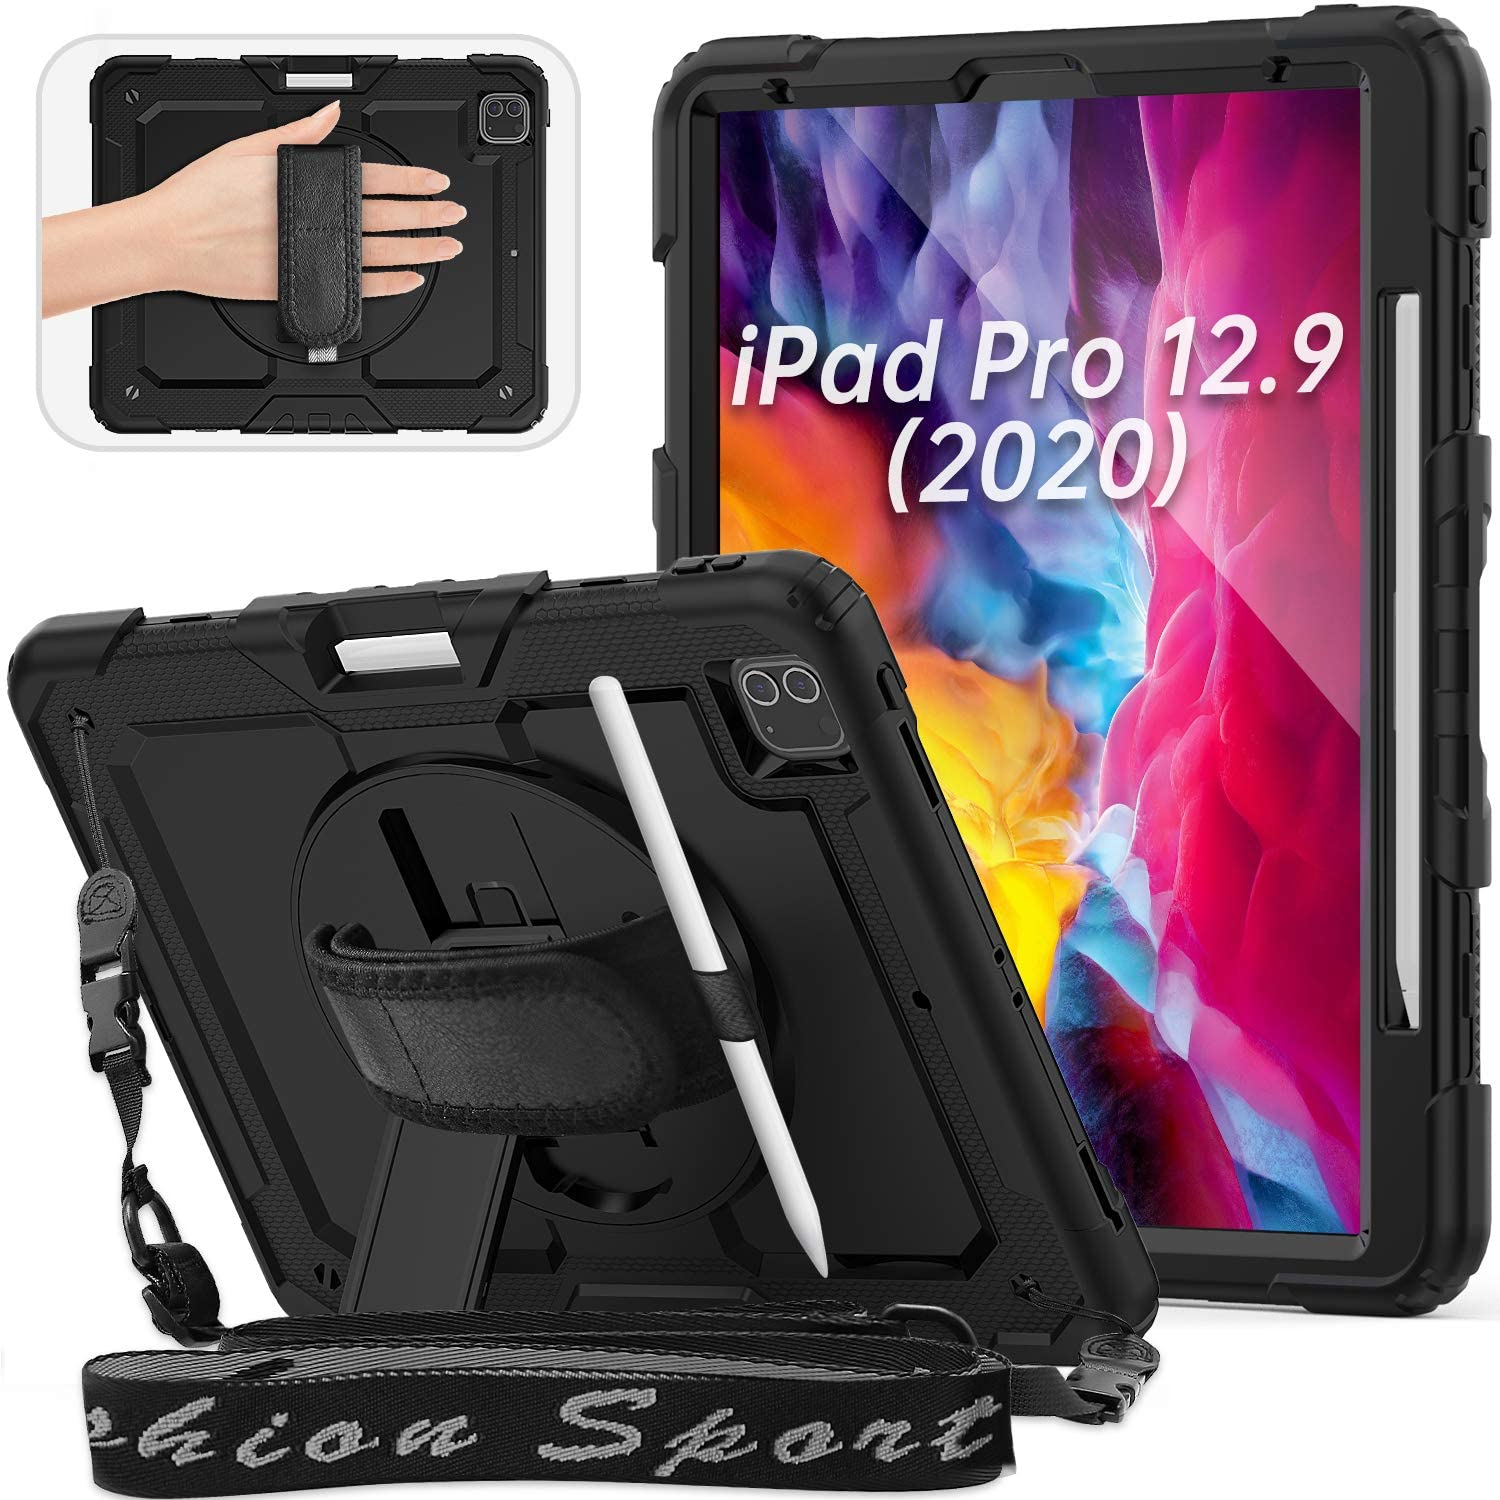 """HXCASEAC Case for New iPad Pro 12.9"""" 2020/2018, Rugged Shockproof Case with [Rotating Hand Strap/Adjustable Shoulder Strap/Screen Protector/Pen Holder/Stand], Support iPad Pencil Charging, Black"""